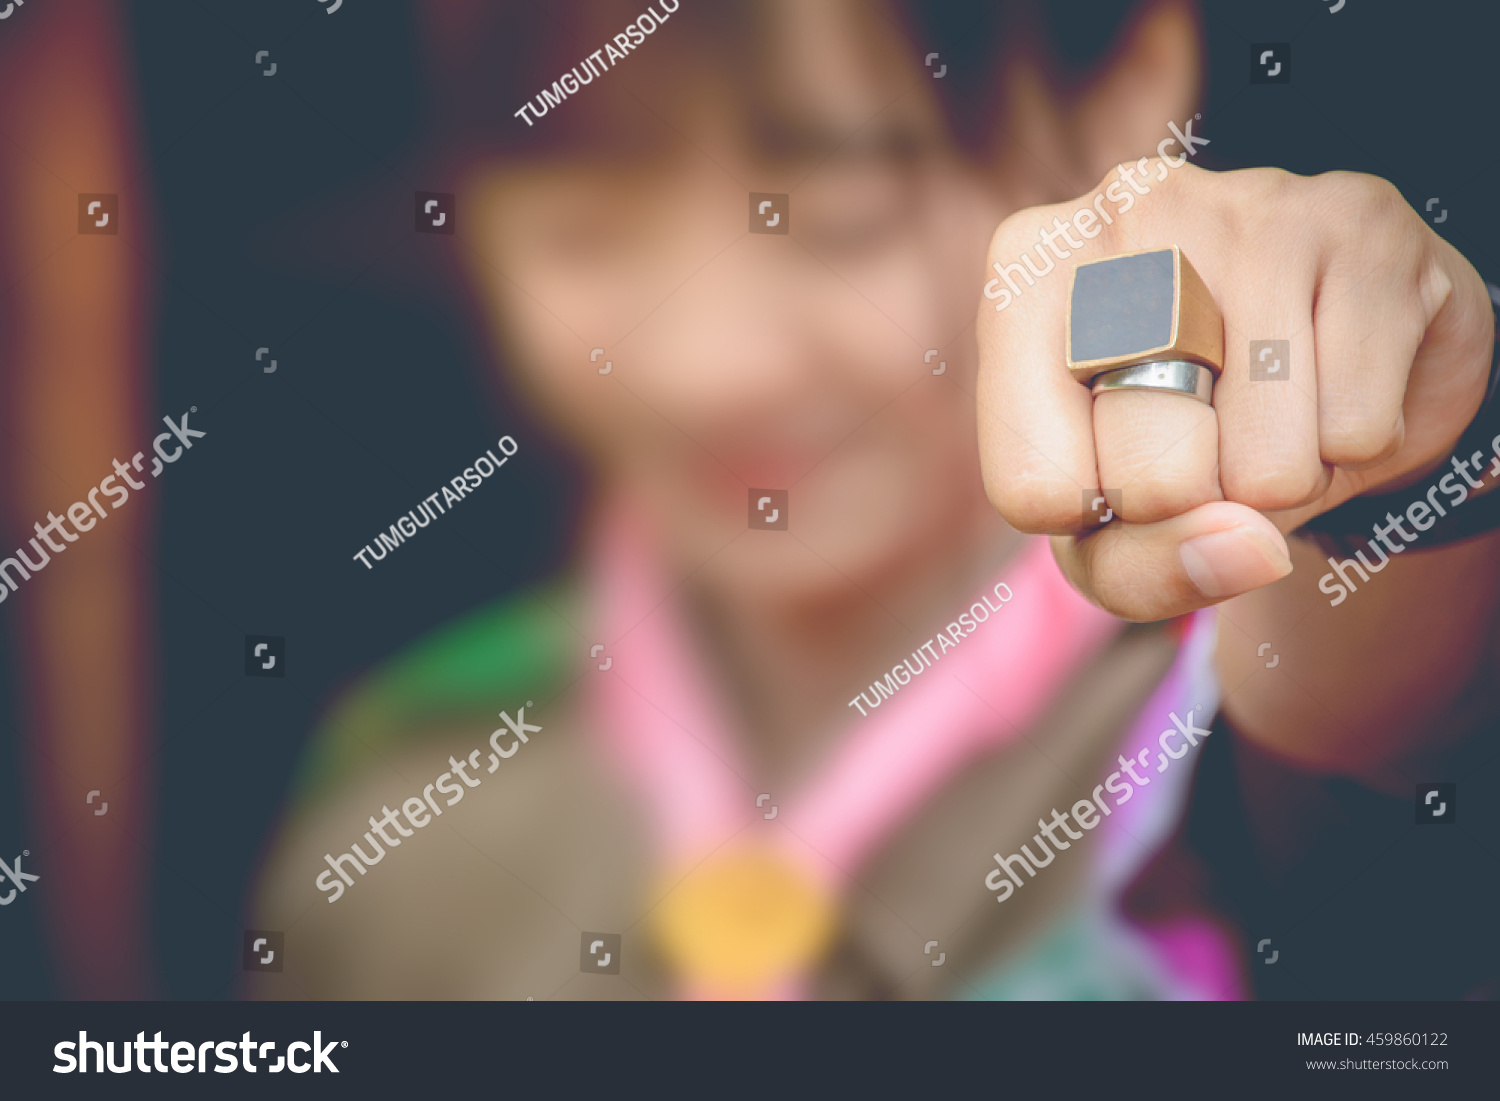 Girl Hand Love Ring Stock Photo 459860122 - Shutterstock